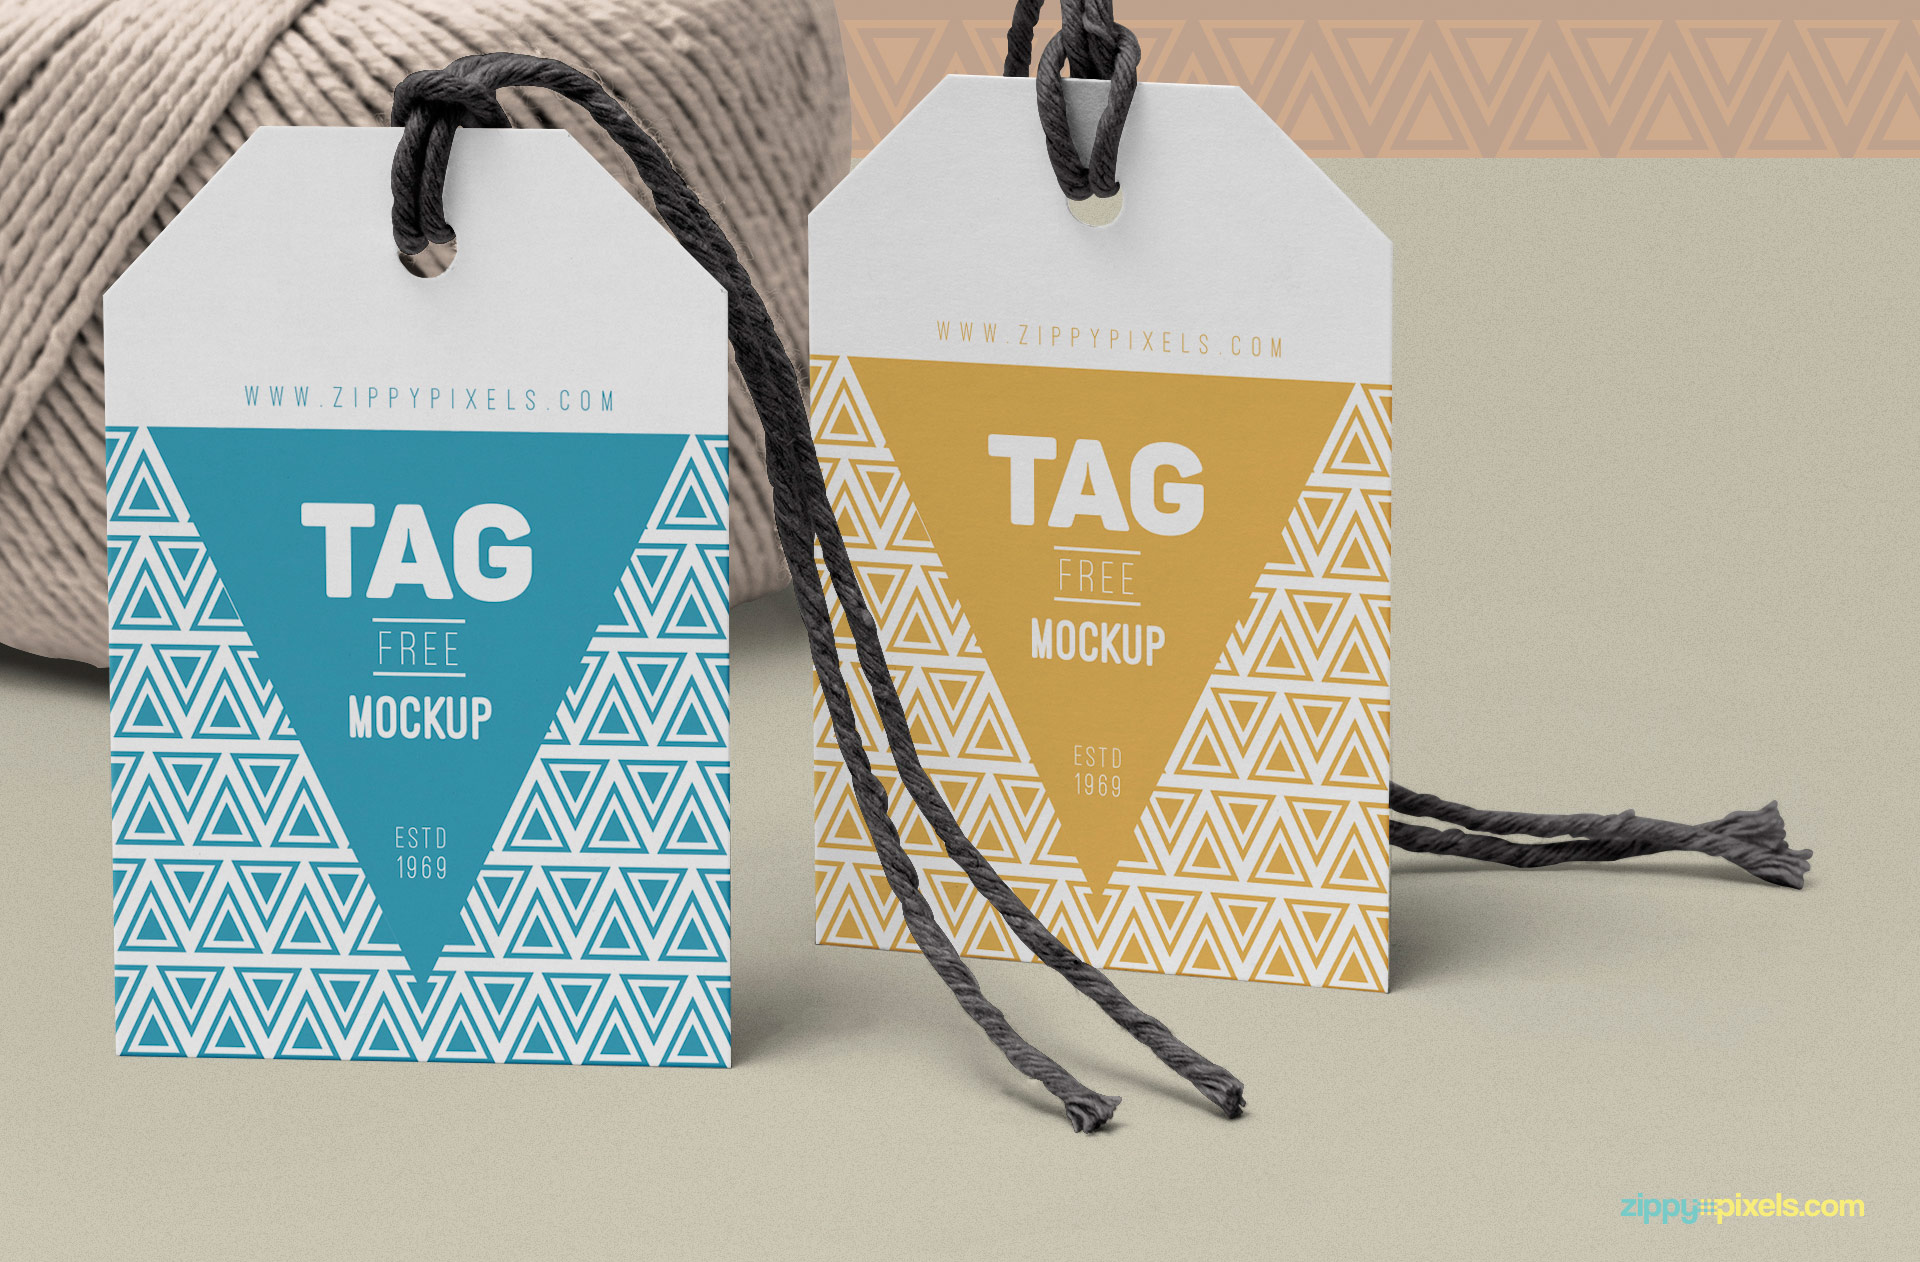 You can change the color of the strings of the tag.